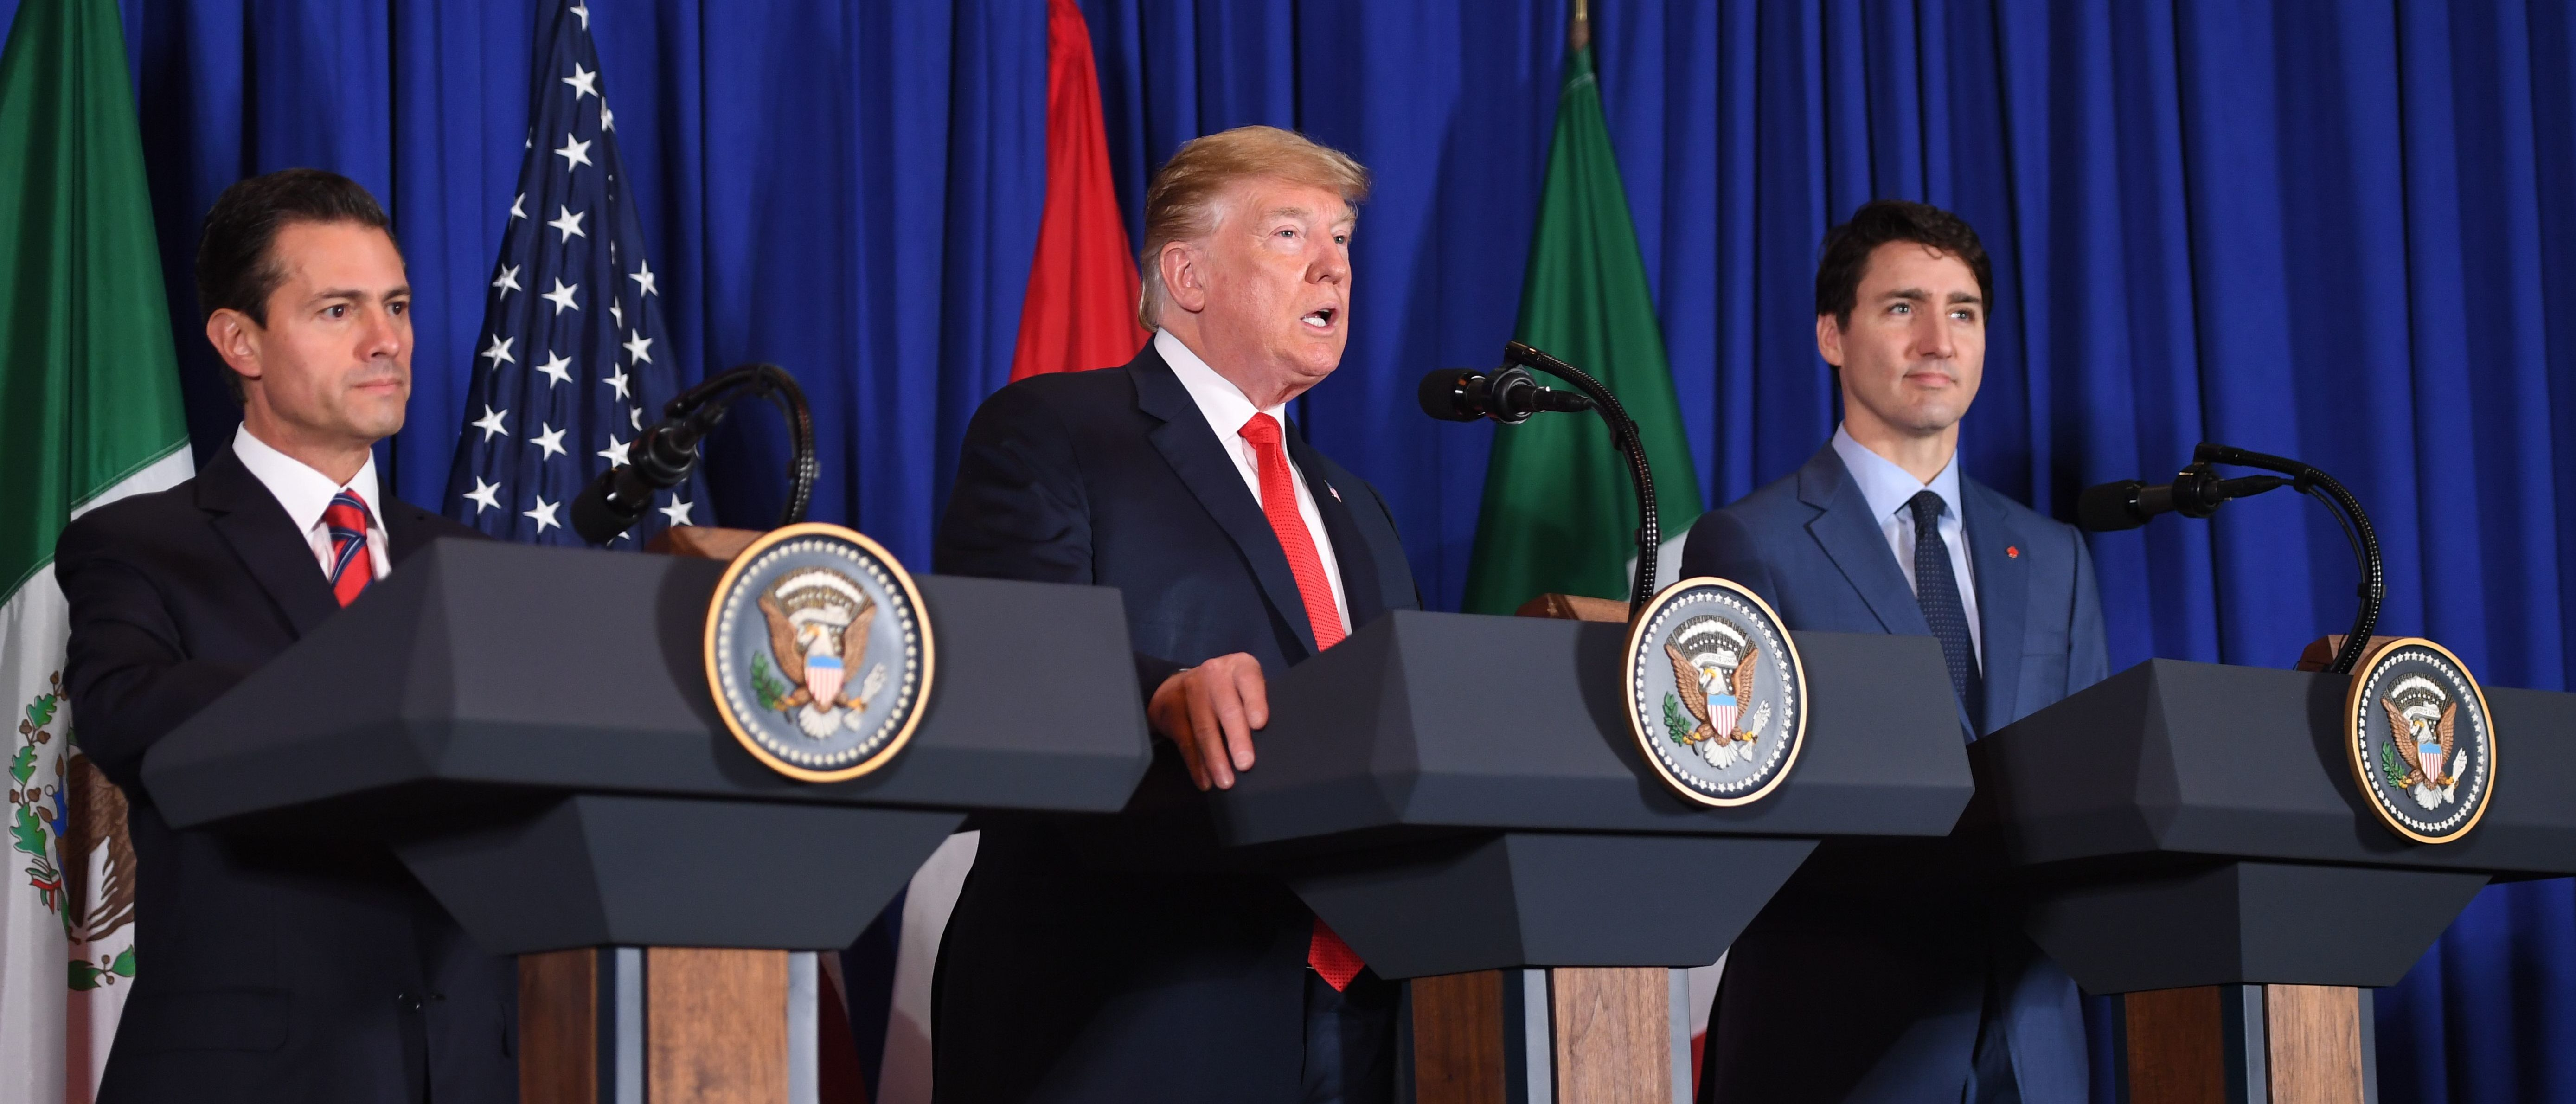 (L to R) Mexican President Enrique Pena Nieto, US President Donald Trump and Canadian Prime Minister Justin Trudeau deliver a statement on the signing of a new free trade agreement in Buenos Aires, on November 30, 2018 (SAUL LOEB / AFP) (Photo credit should read SAUL LOEB/AFP/Getty Images)